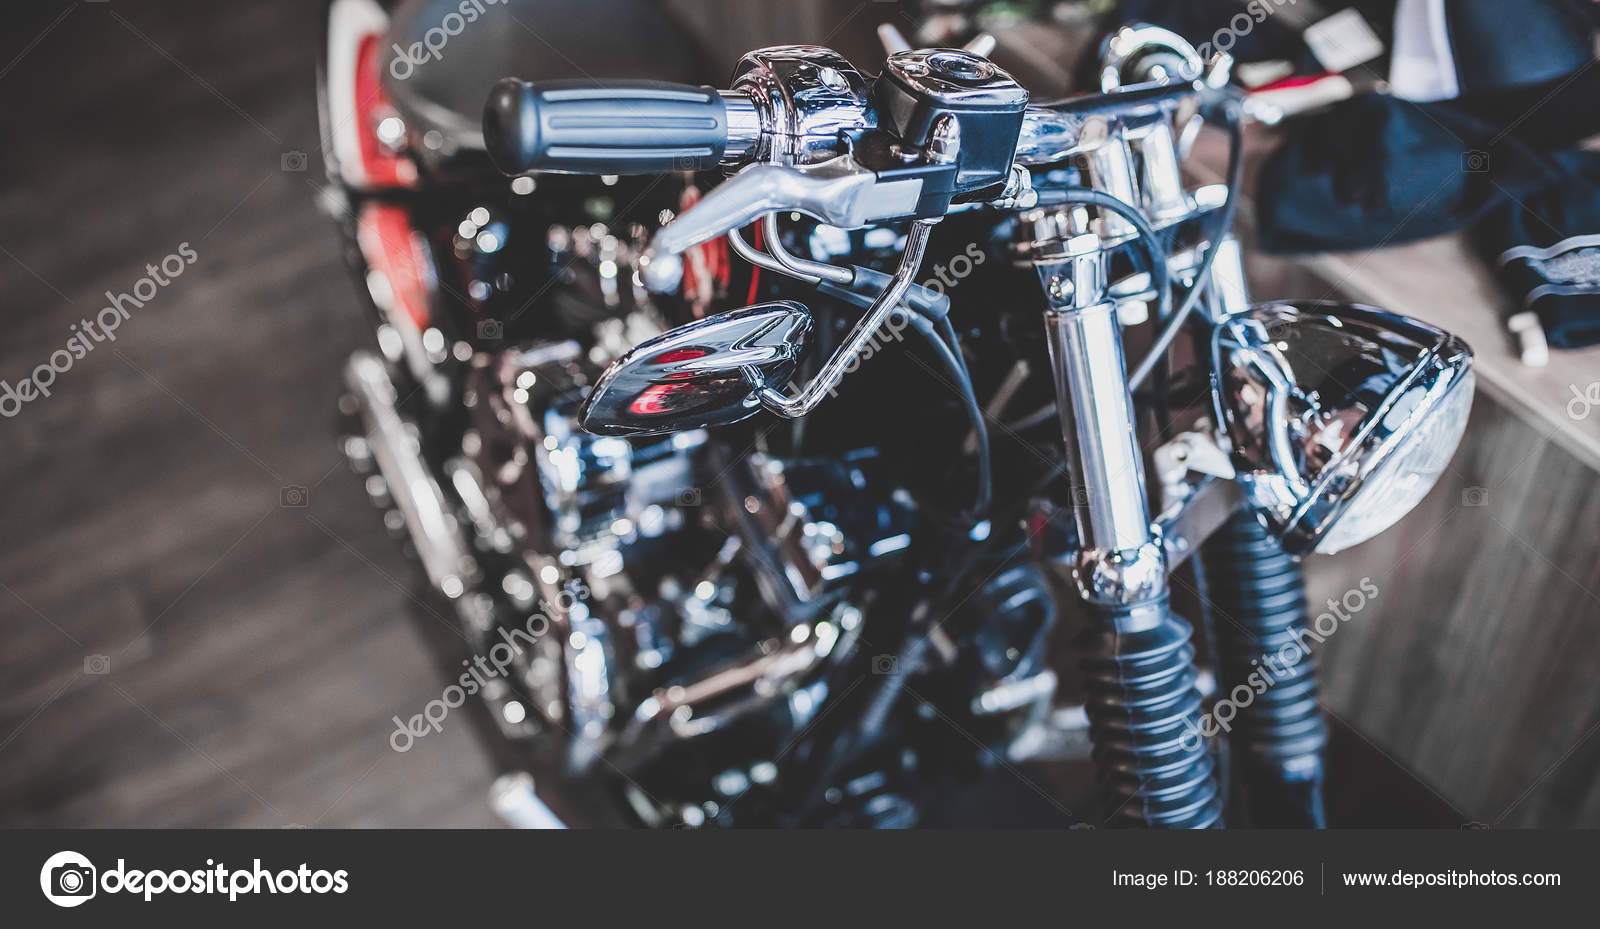 Modern motorcycle shop — Stock Photo © 4pmphoto@gmail com